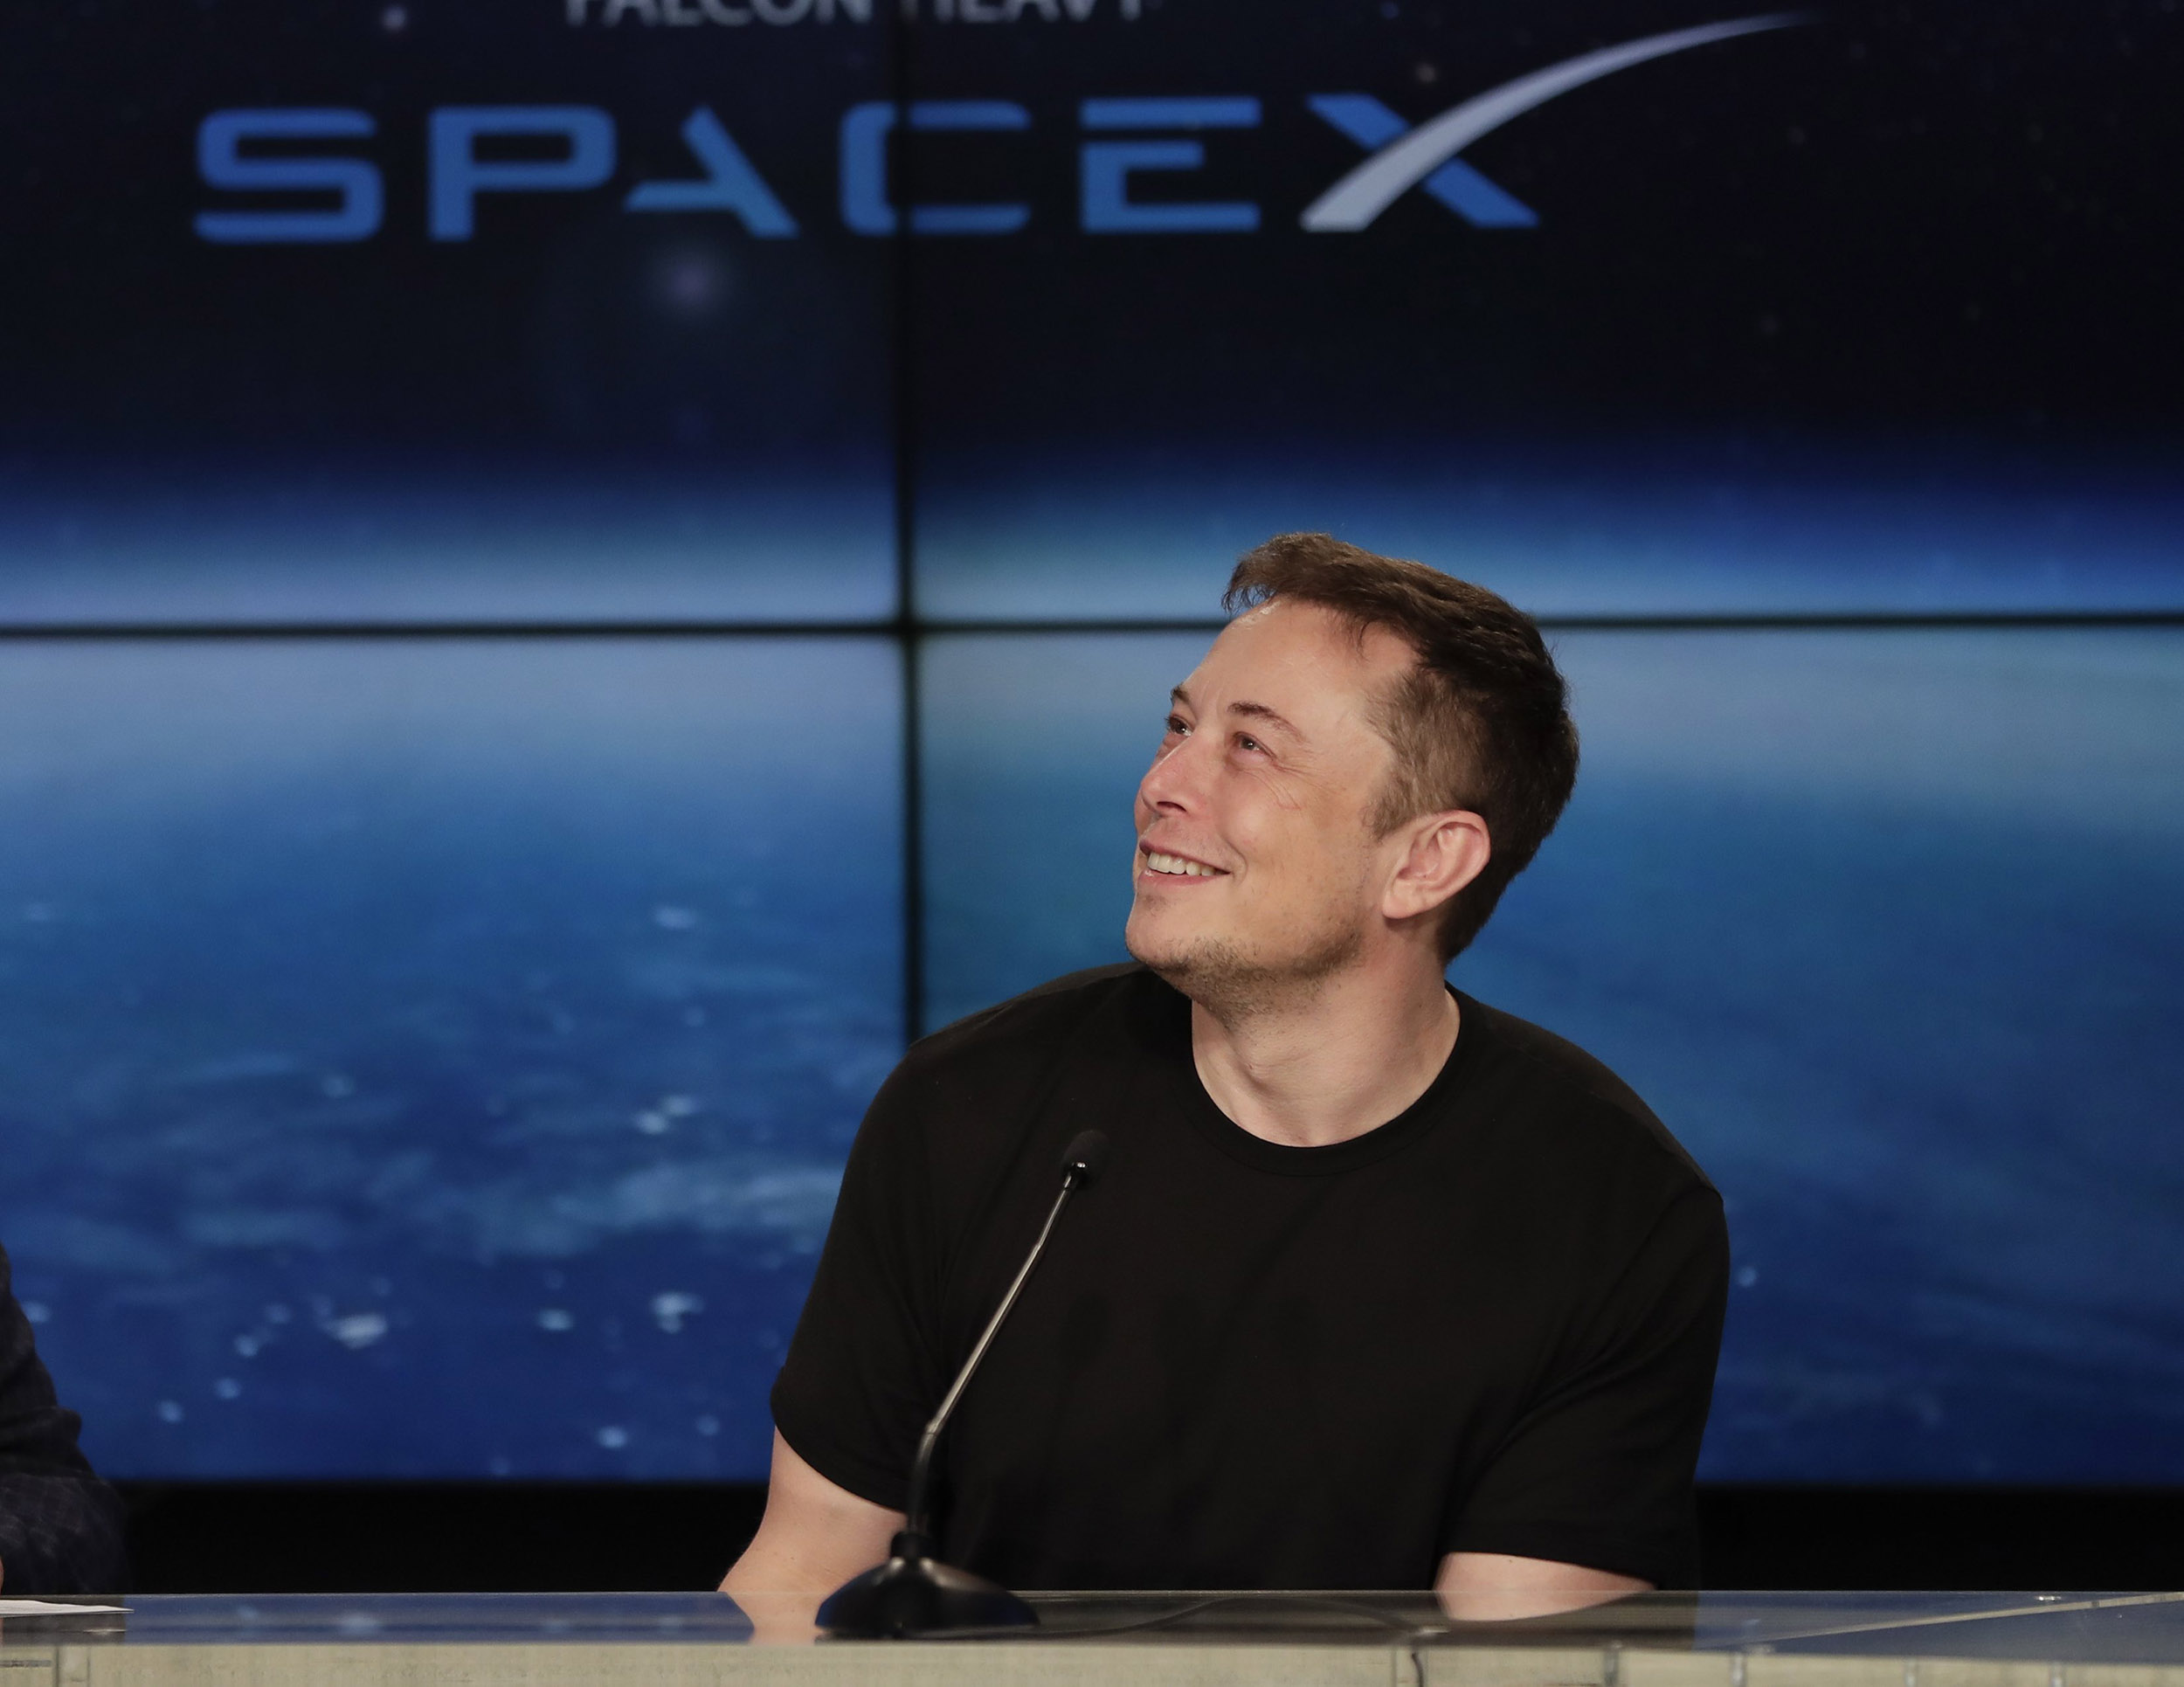 SpaceX looks forward to settling in the Gulf of Mexico